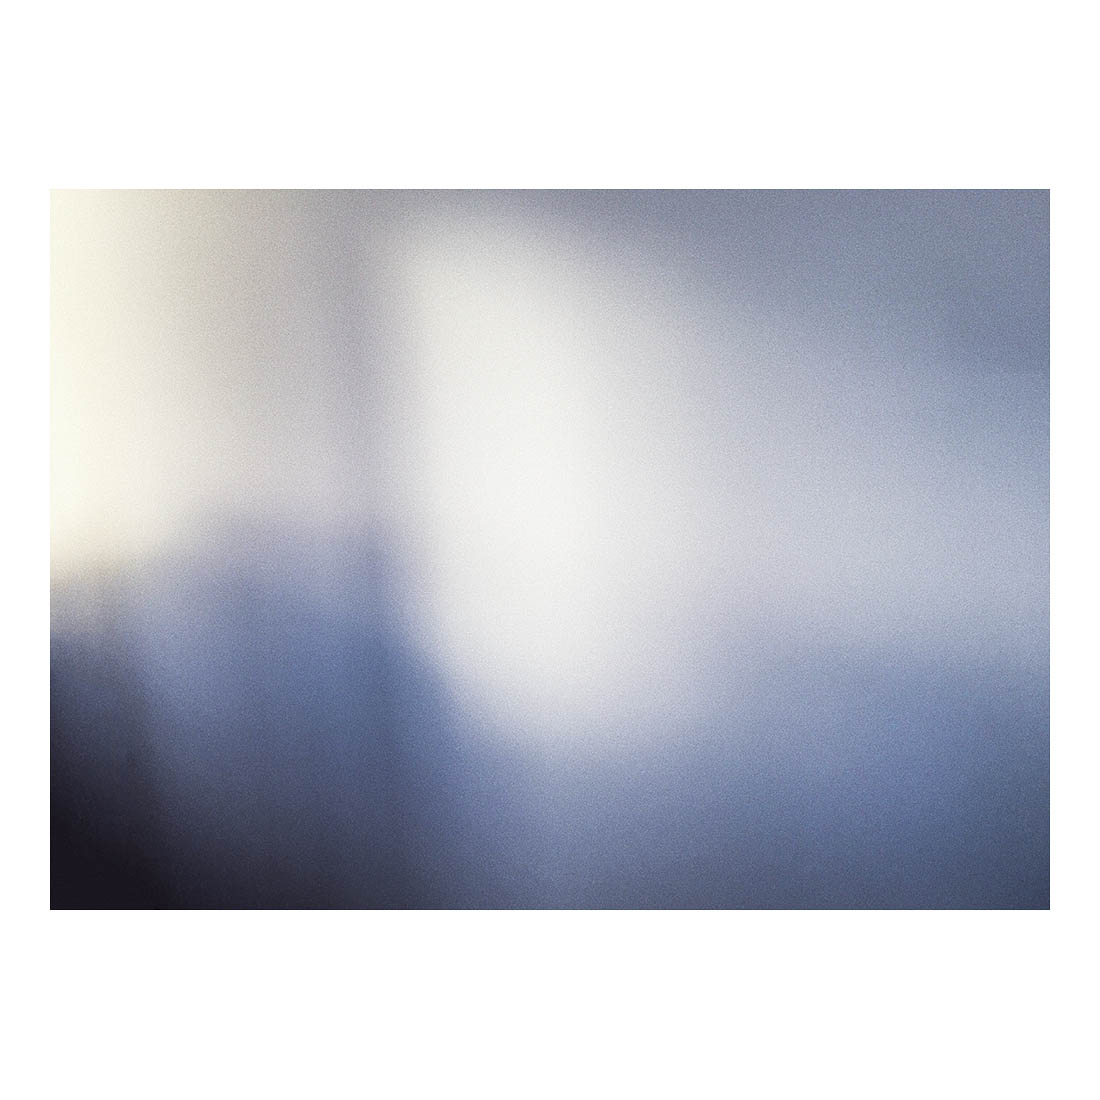 Fleeting Moment #02   Archival pigment print 27cm x 36cm Ed. of 9